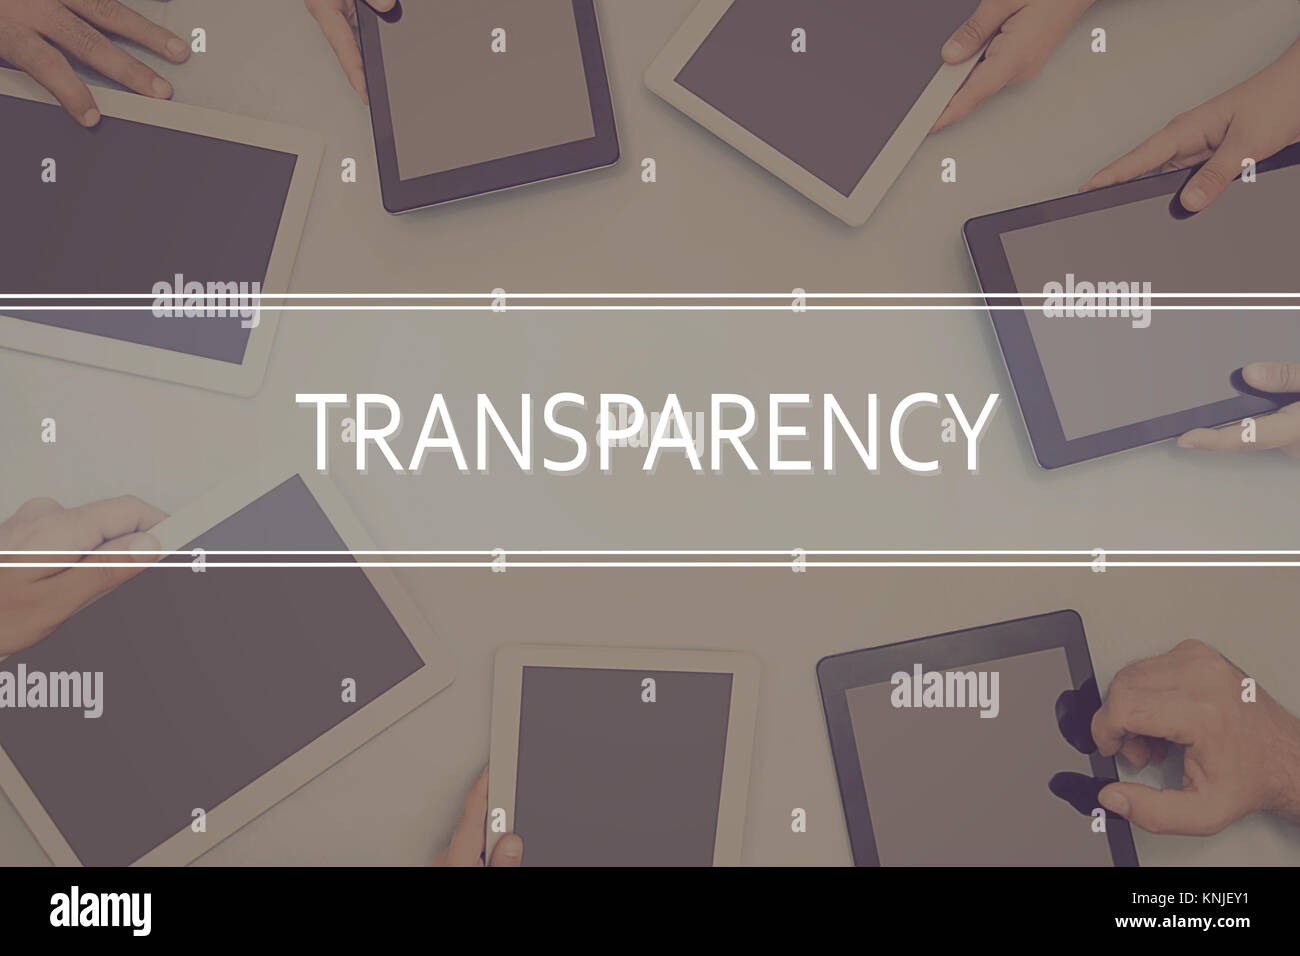 TRANSPARENCY CONCEPT Business Concept. - Stock Image